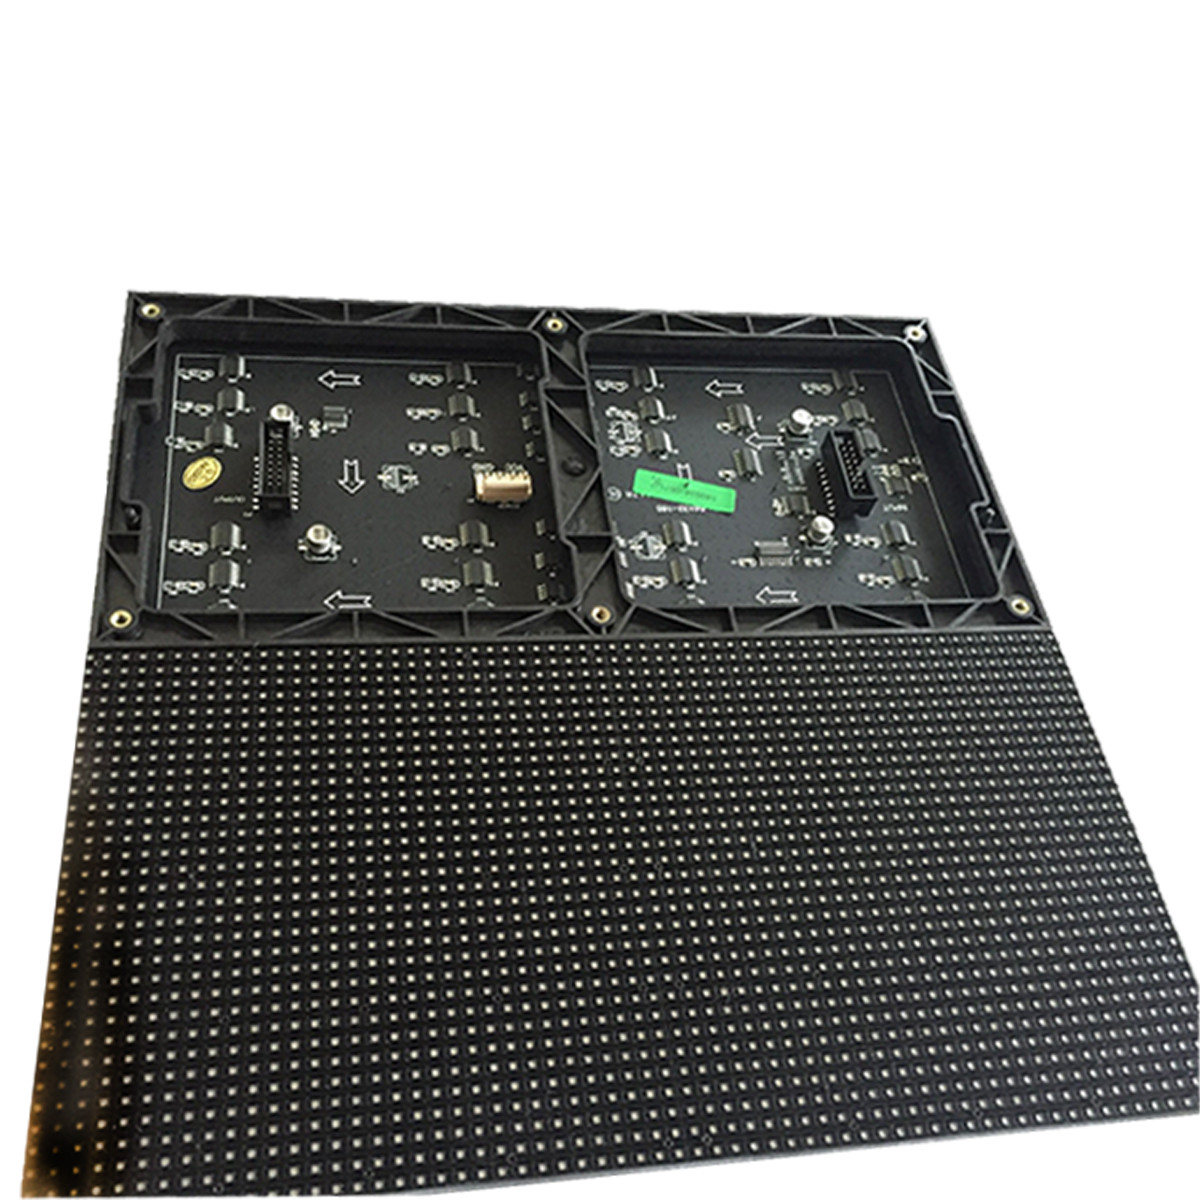 P4 Outdoor SMD LED Display Module 256*128mm SMD1921 5000cd/㎡ Brightness 1920Hz High Refresh